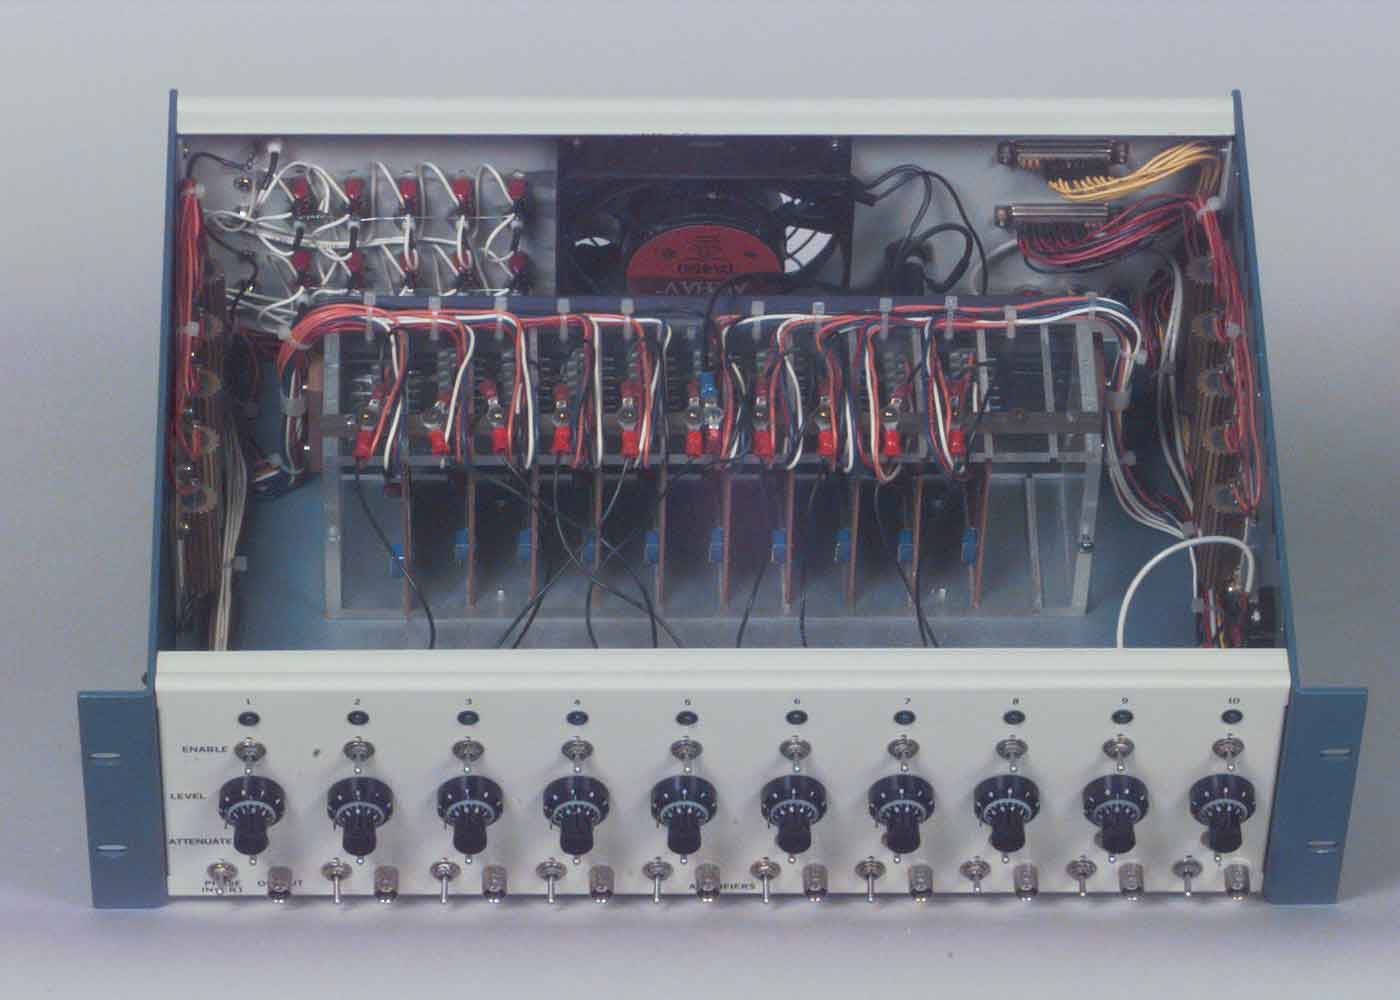 Kf6fwh Work Projects Example Of Amplifier Assembly With Lm1875 Suggested By The National Inside View